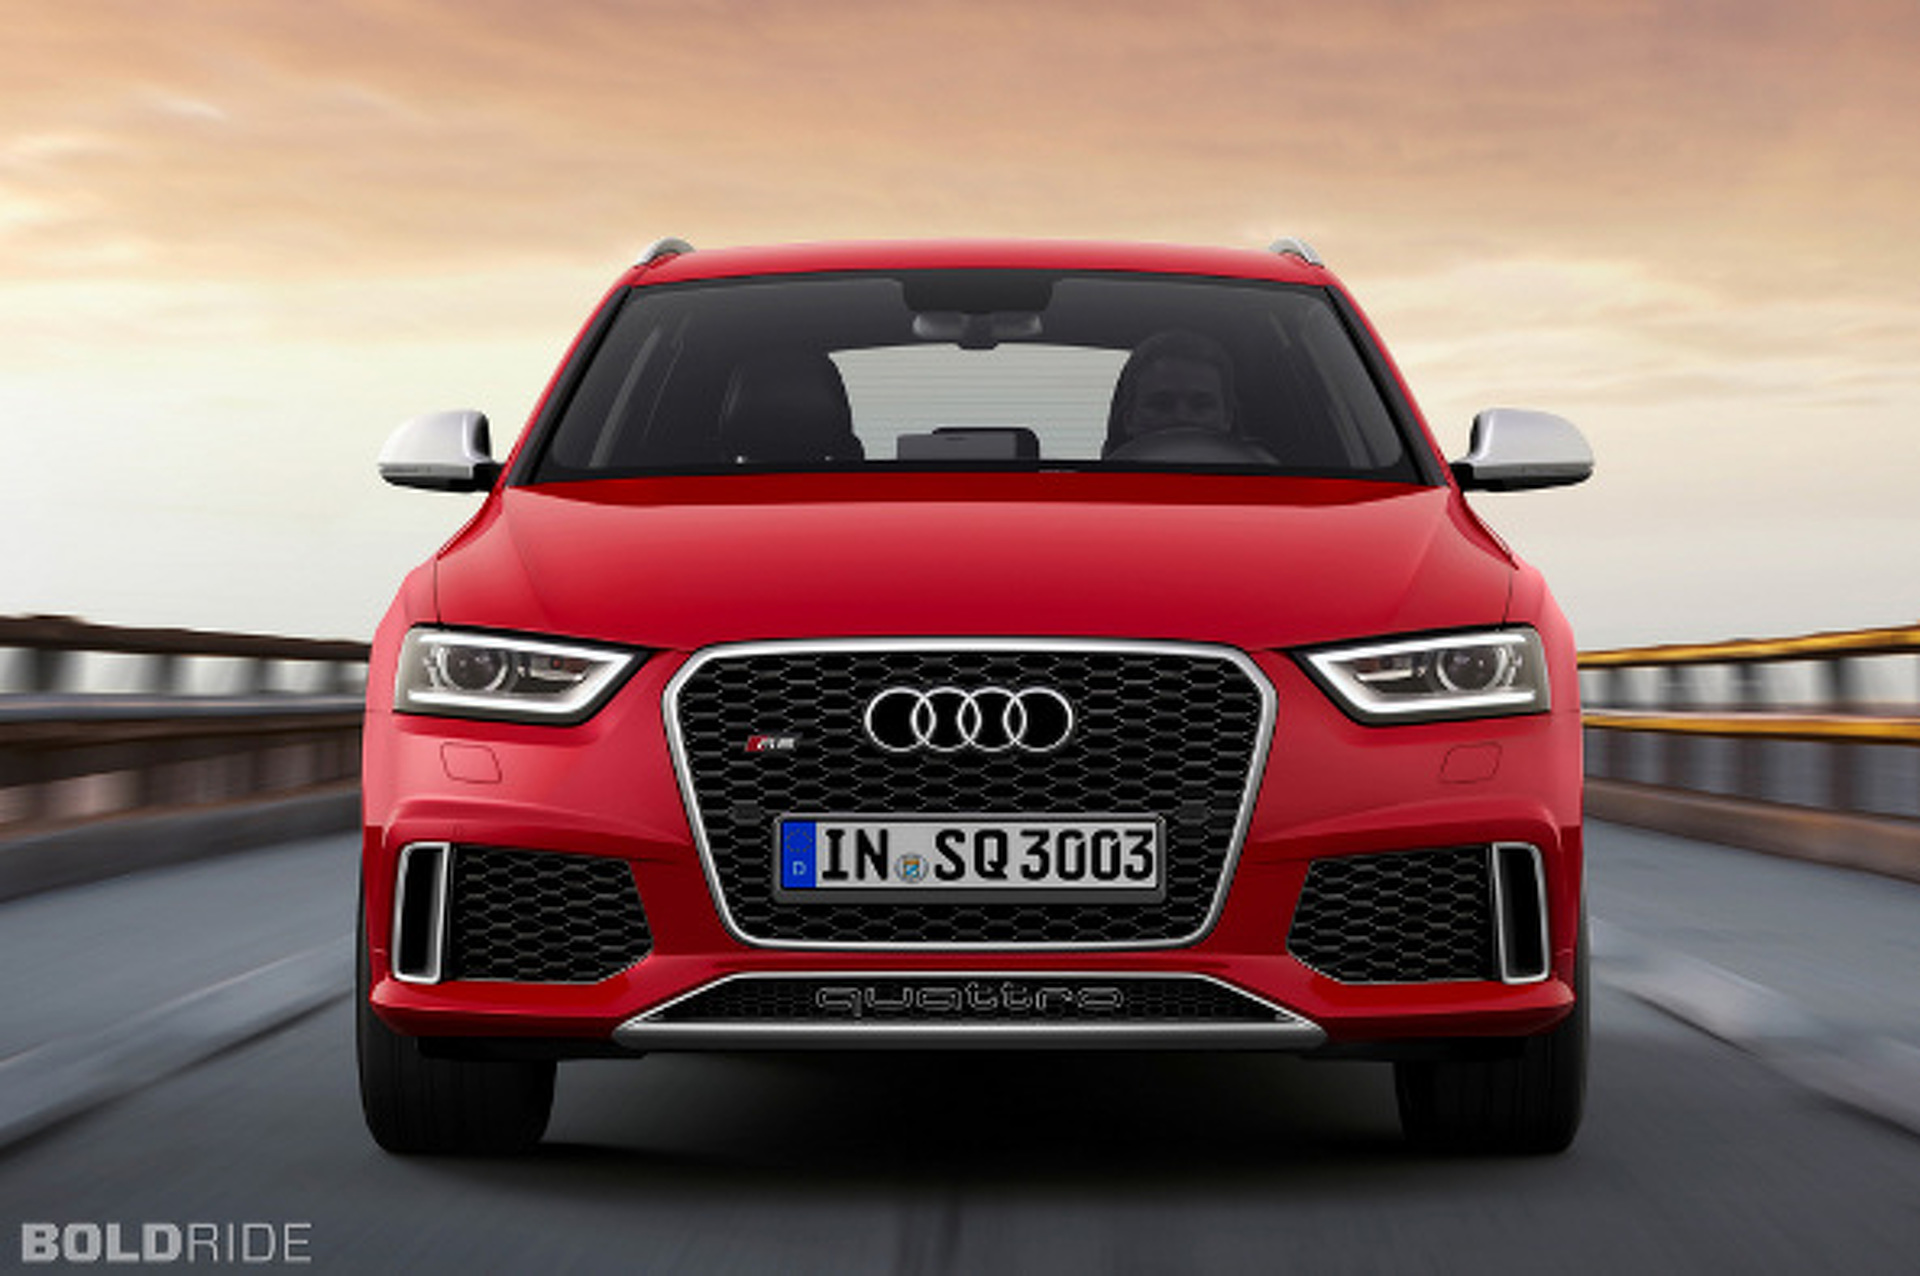 Audi RS Q3 Is Weak-Sauce, and Europe Can Keep It